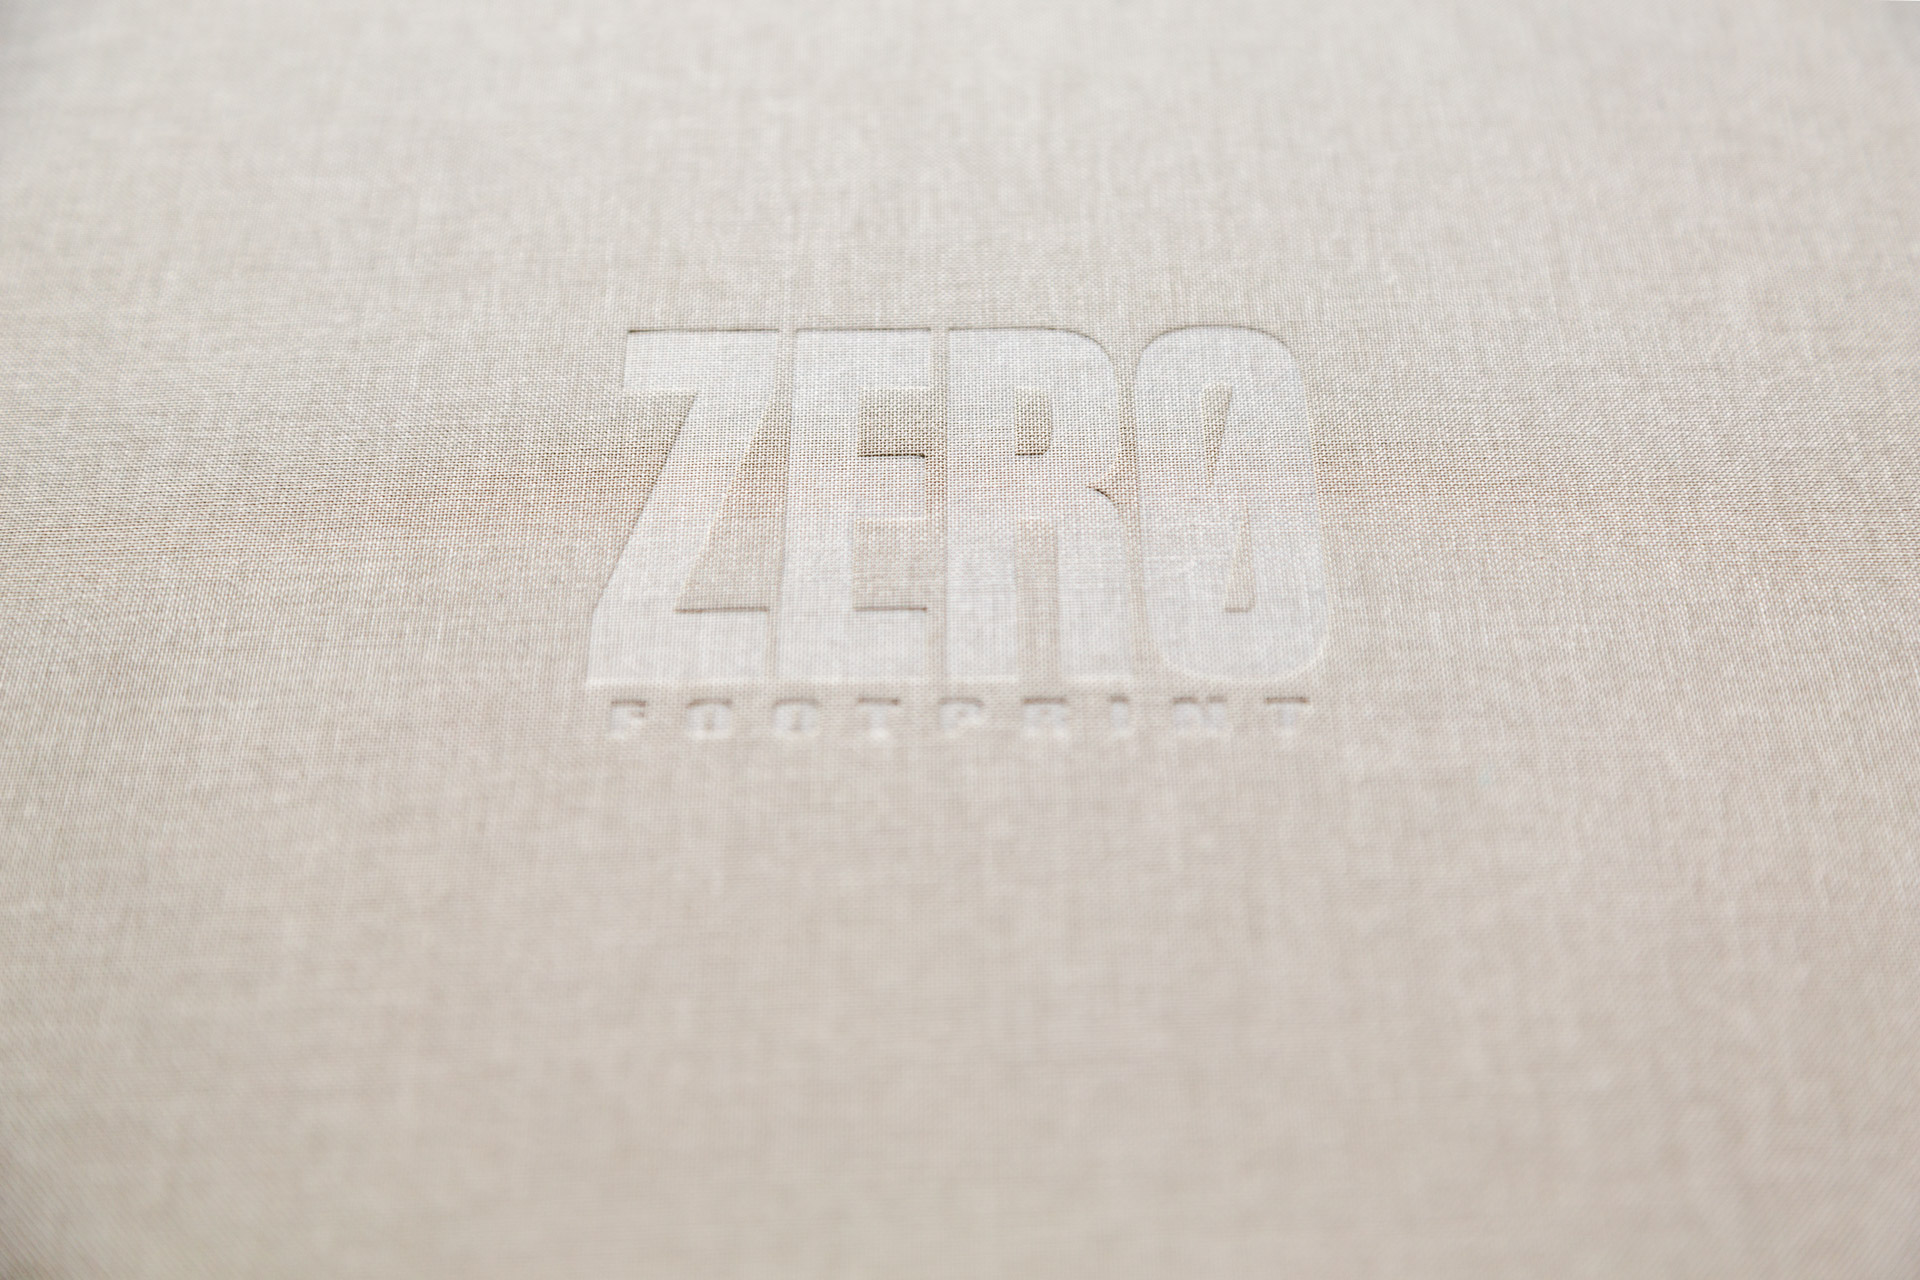 Cover of the photo book I won,   Zero Footprint,  by Leeming and Paterson.